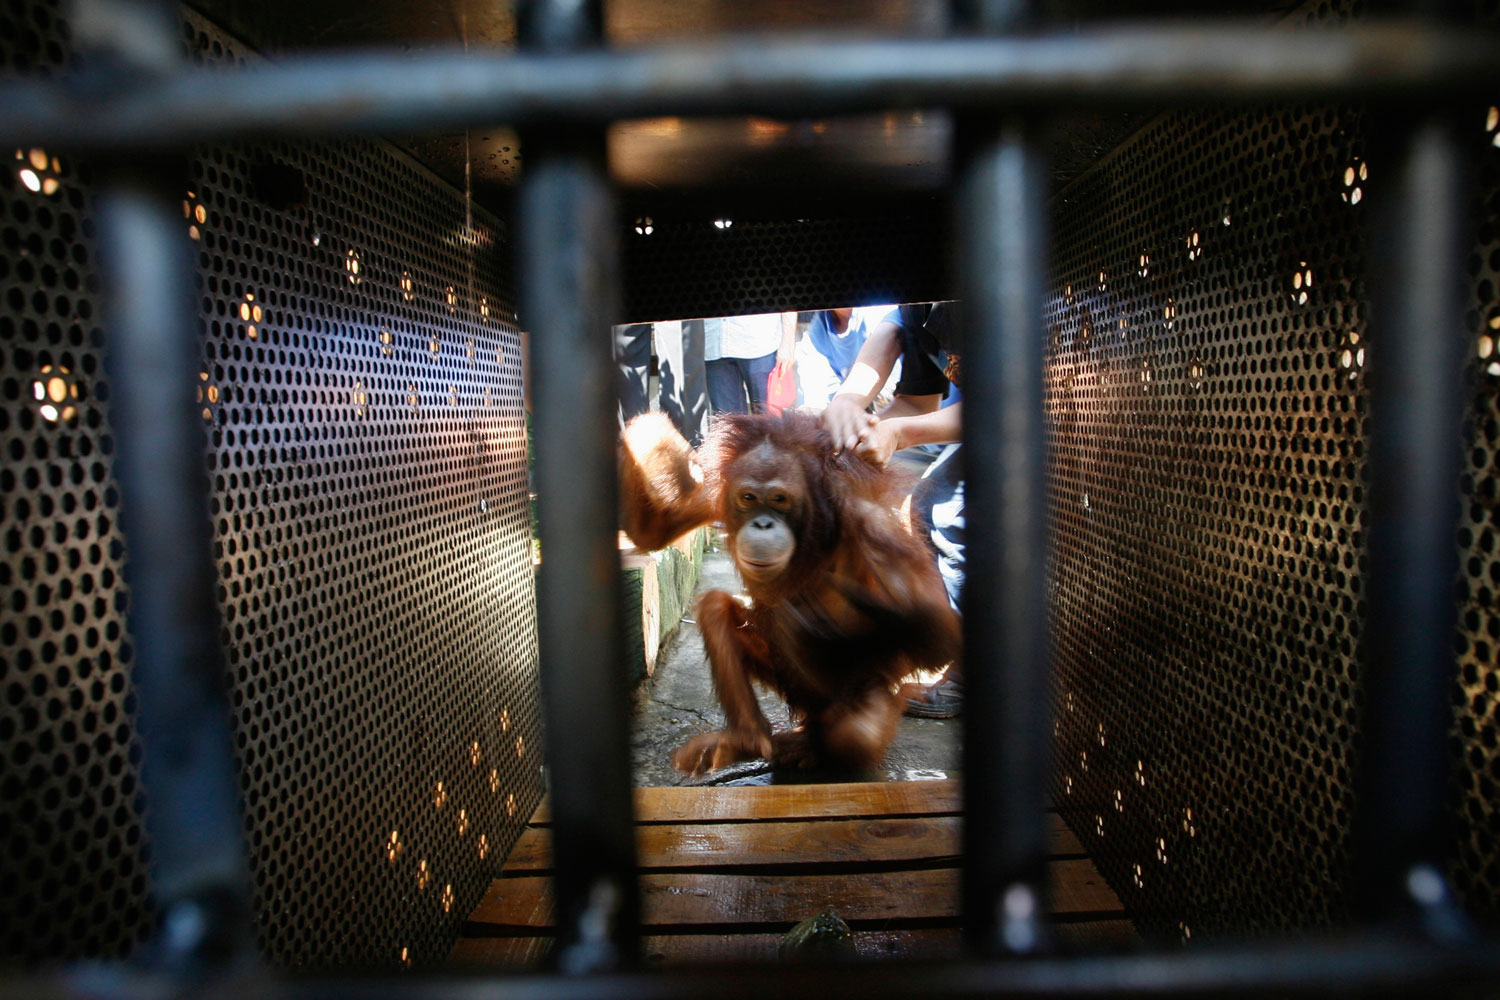 A female orangutan gets into a cage after being rescued in Pasuruan, East Java, on July 10, 2012.